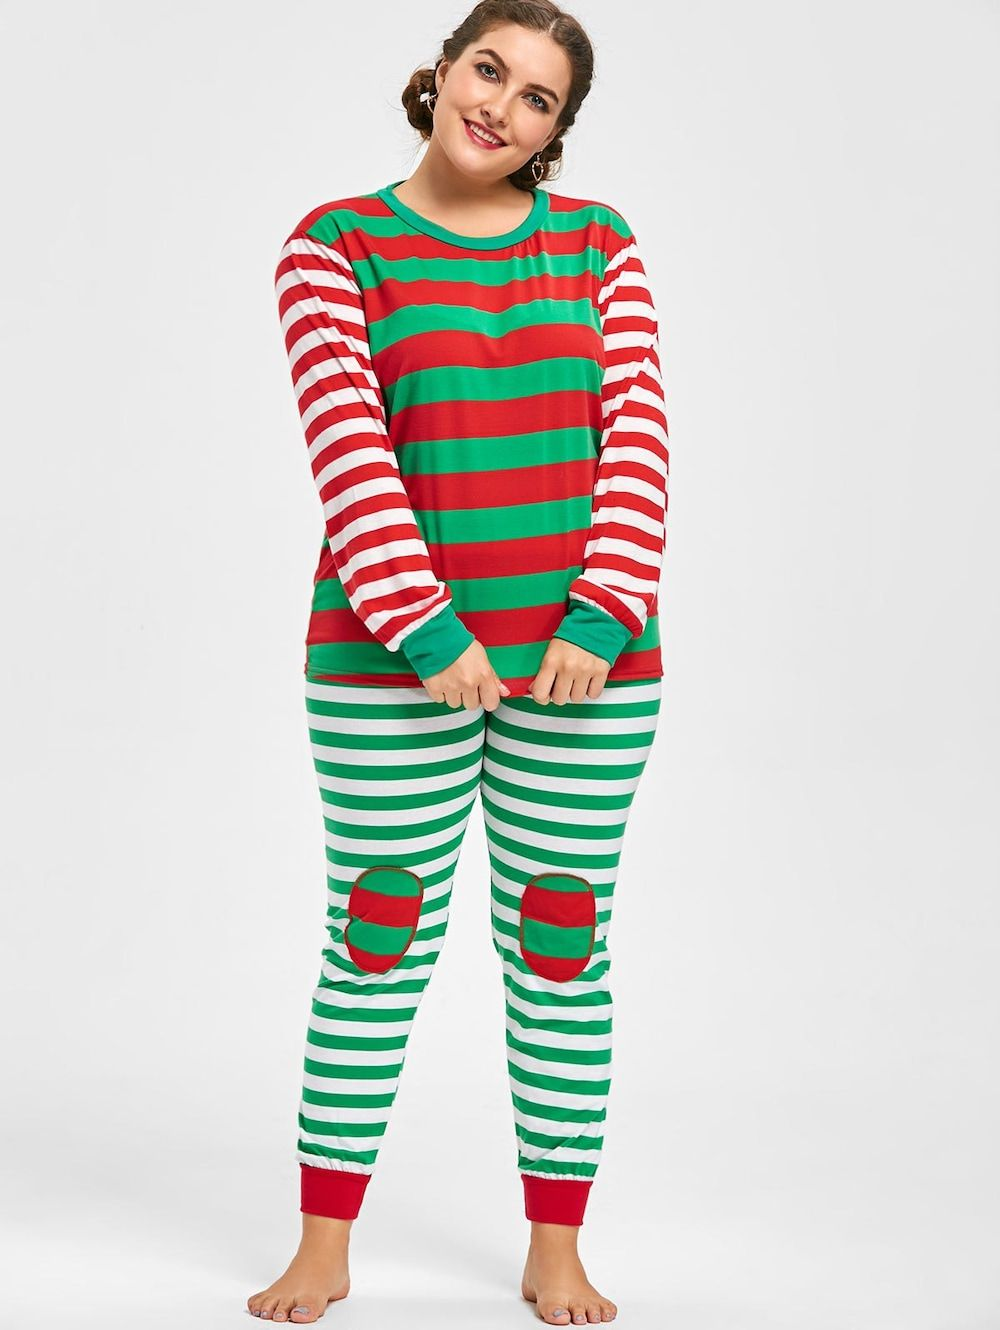 Plus Size Christmas Pajamas.Striped Plus Size Christmas Pajama Set Red Green Xl